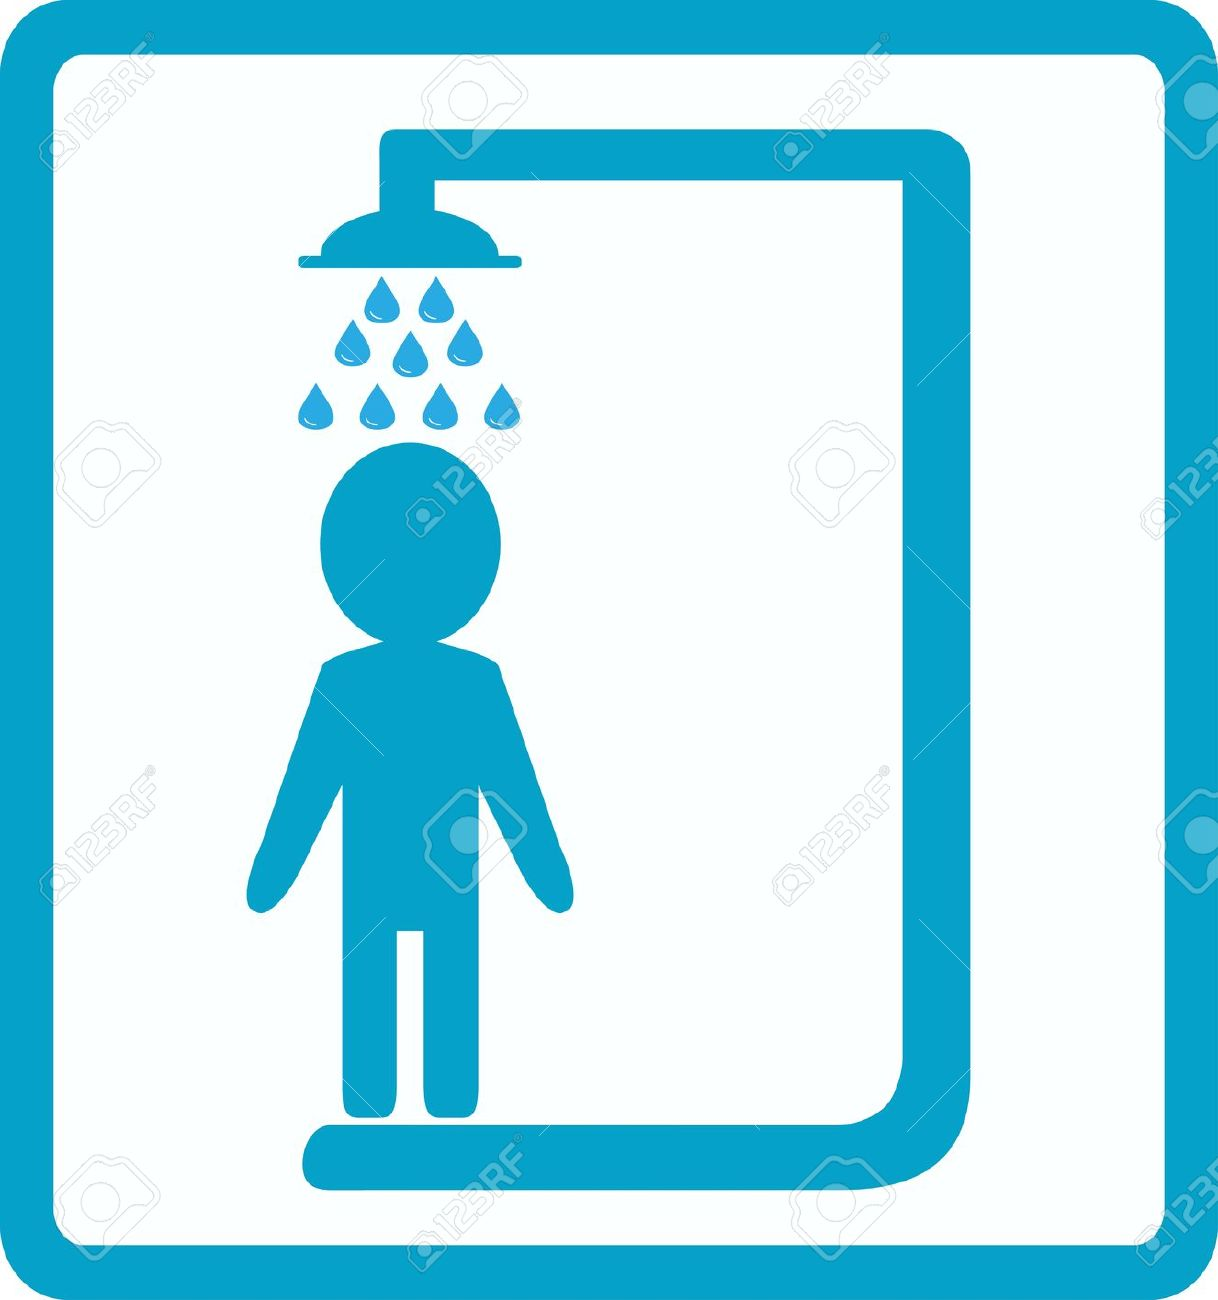 Symbol Of Shower Room With Man Silhouette Royalty Free Cliparts.